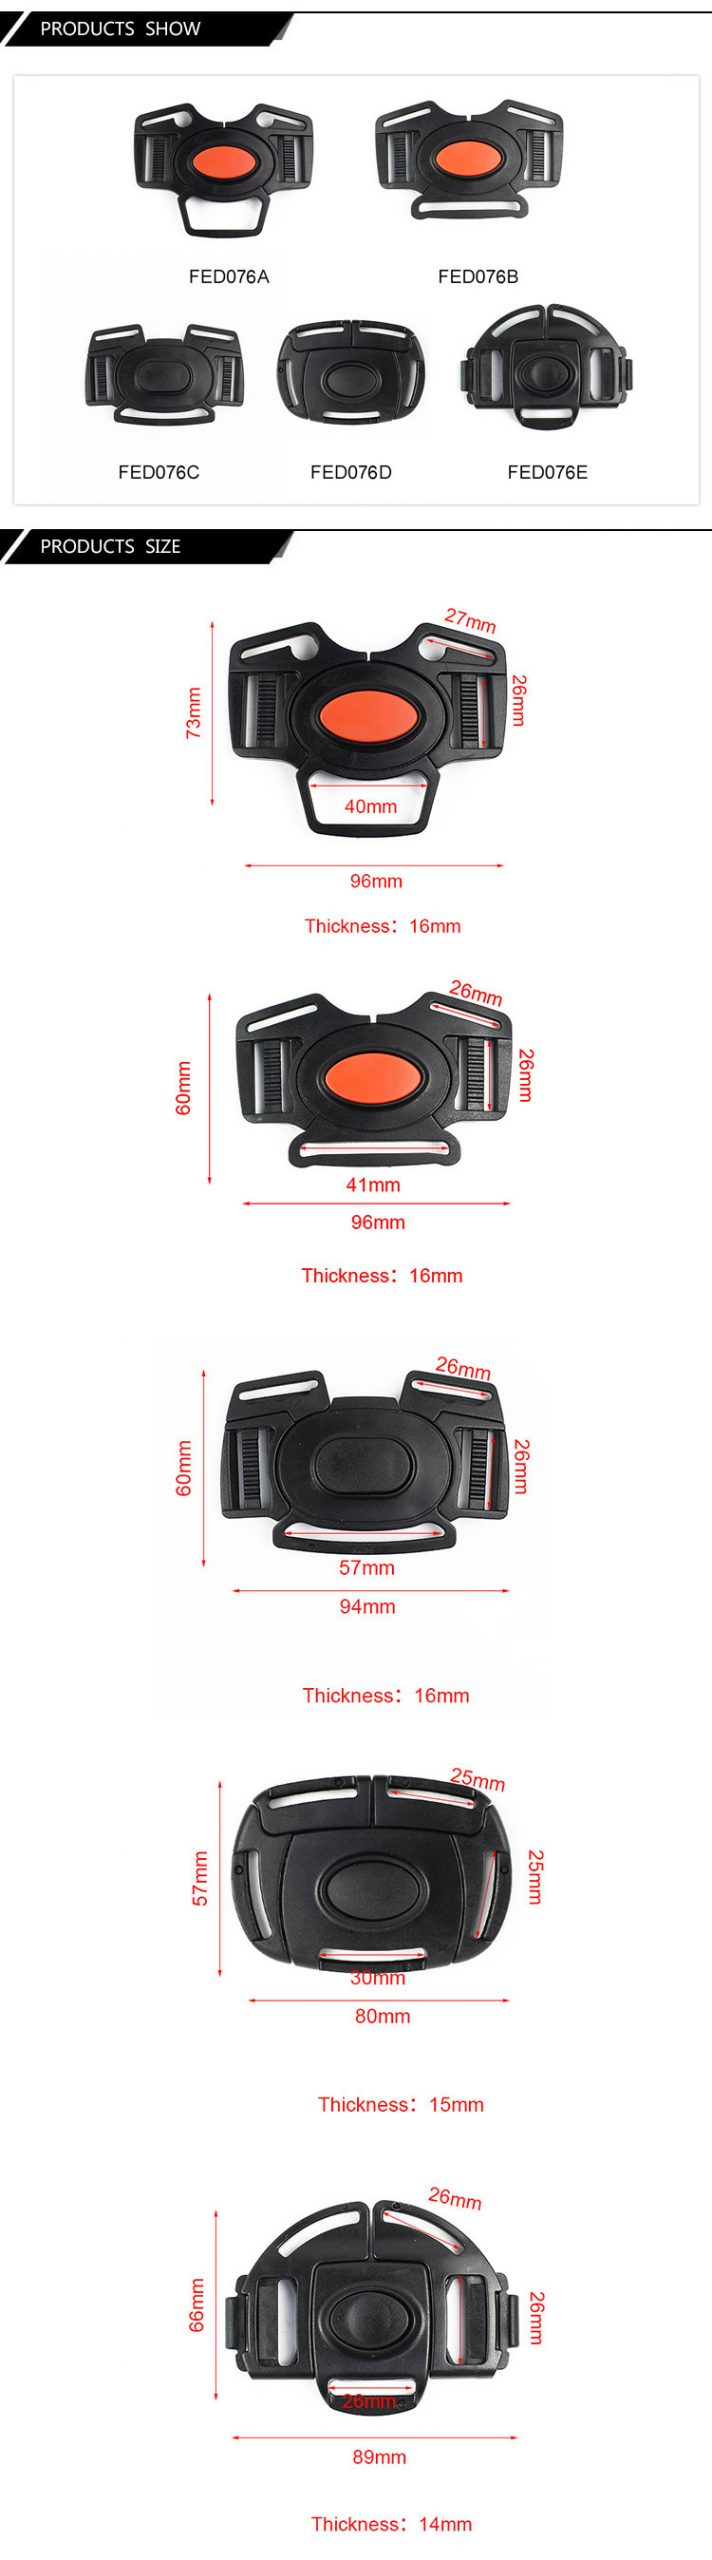 FED076 Car Safety Belt Clip Chest Buckle